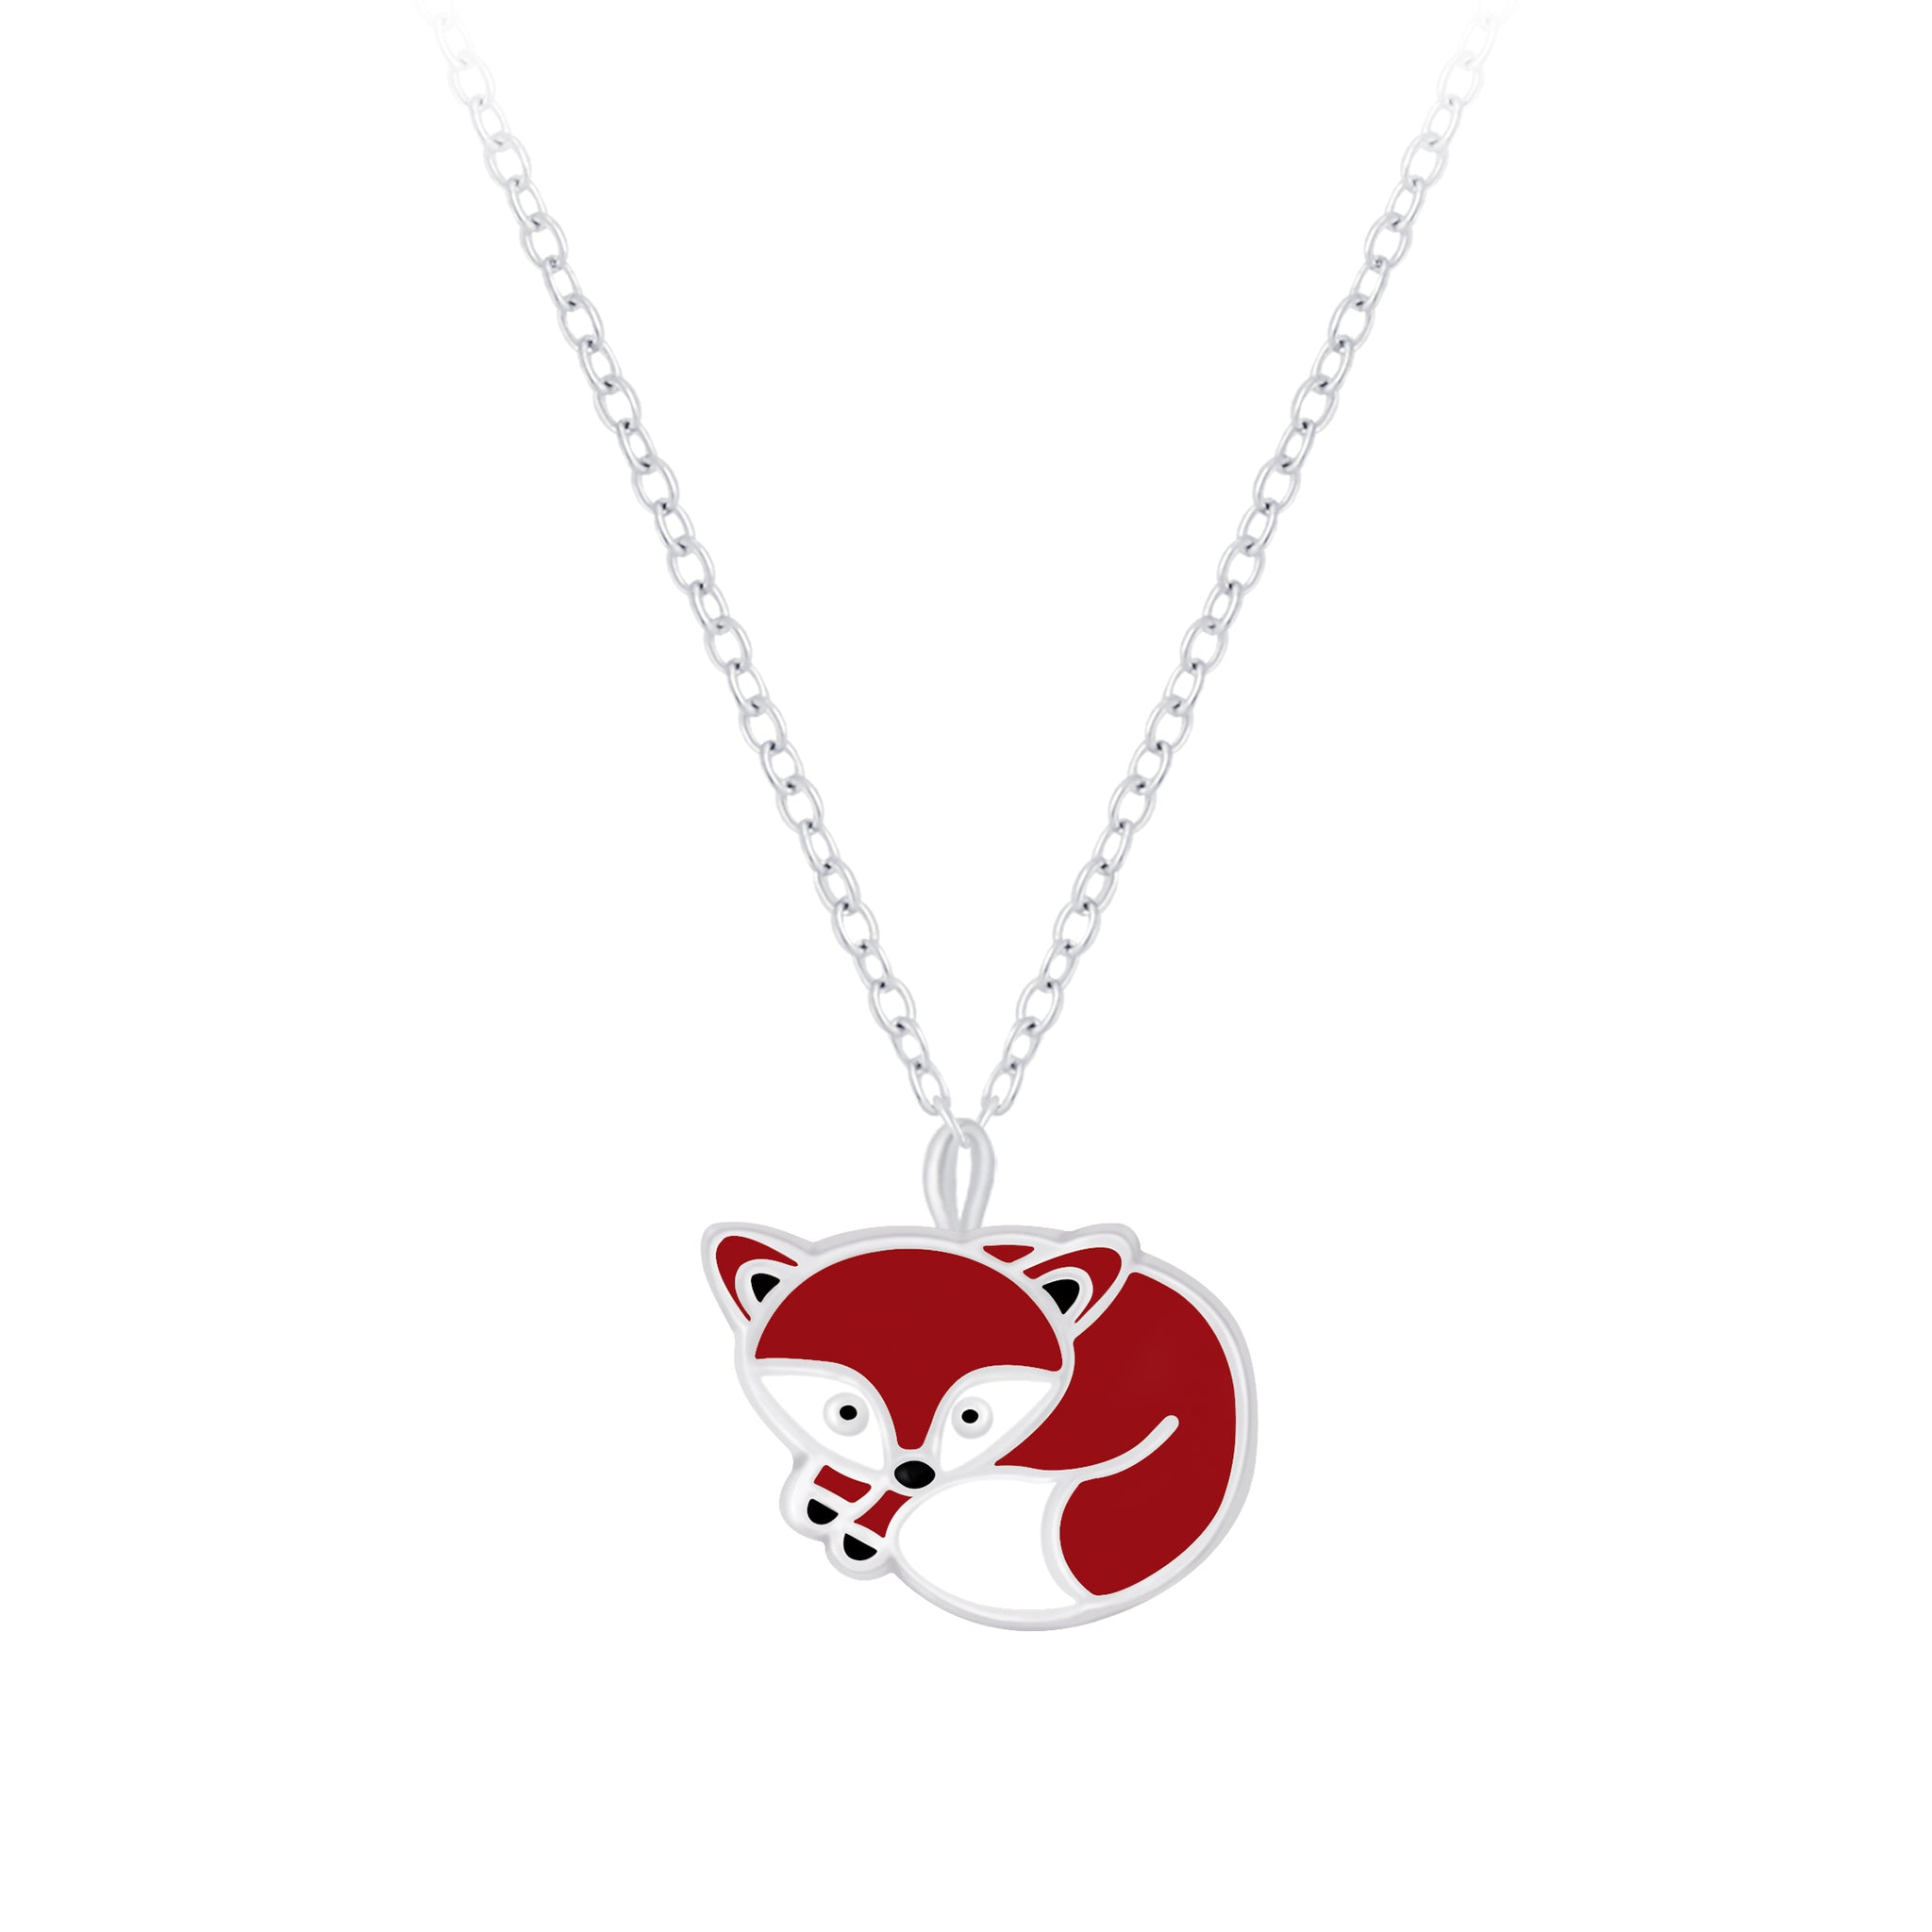 This fantastic fox dainty pendant necklace features a miniature little fox curled up sleeping.